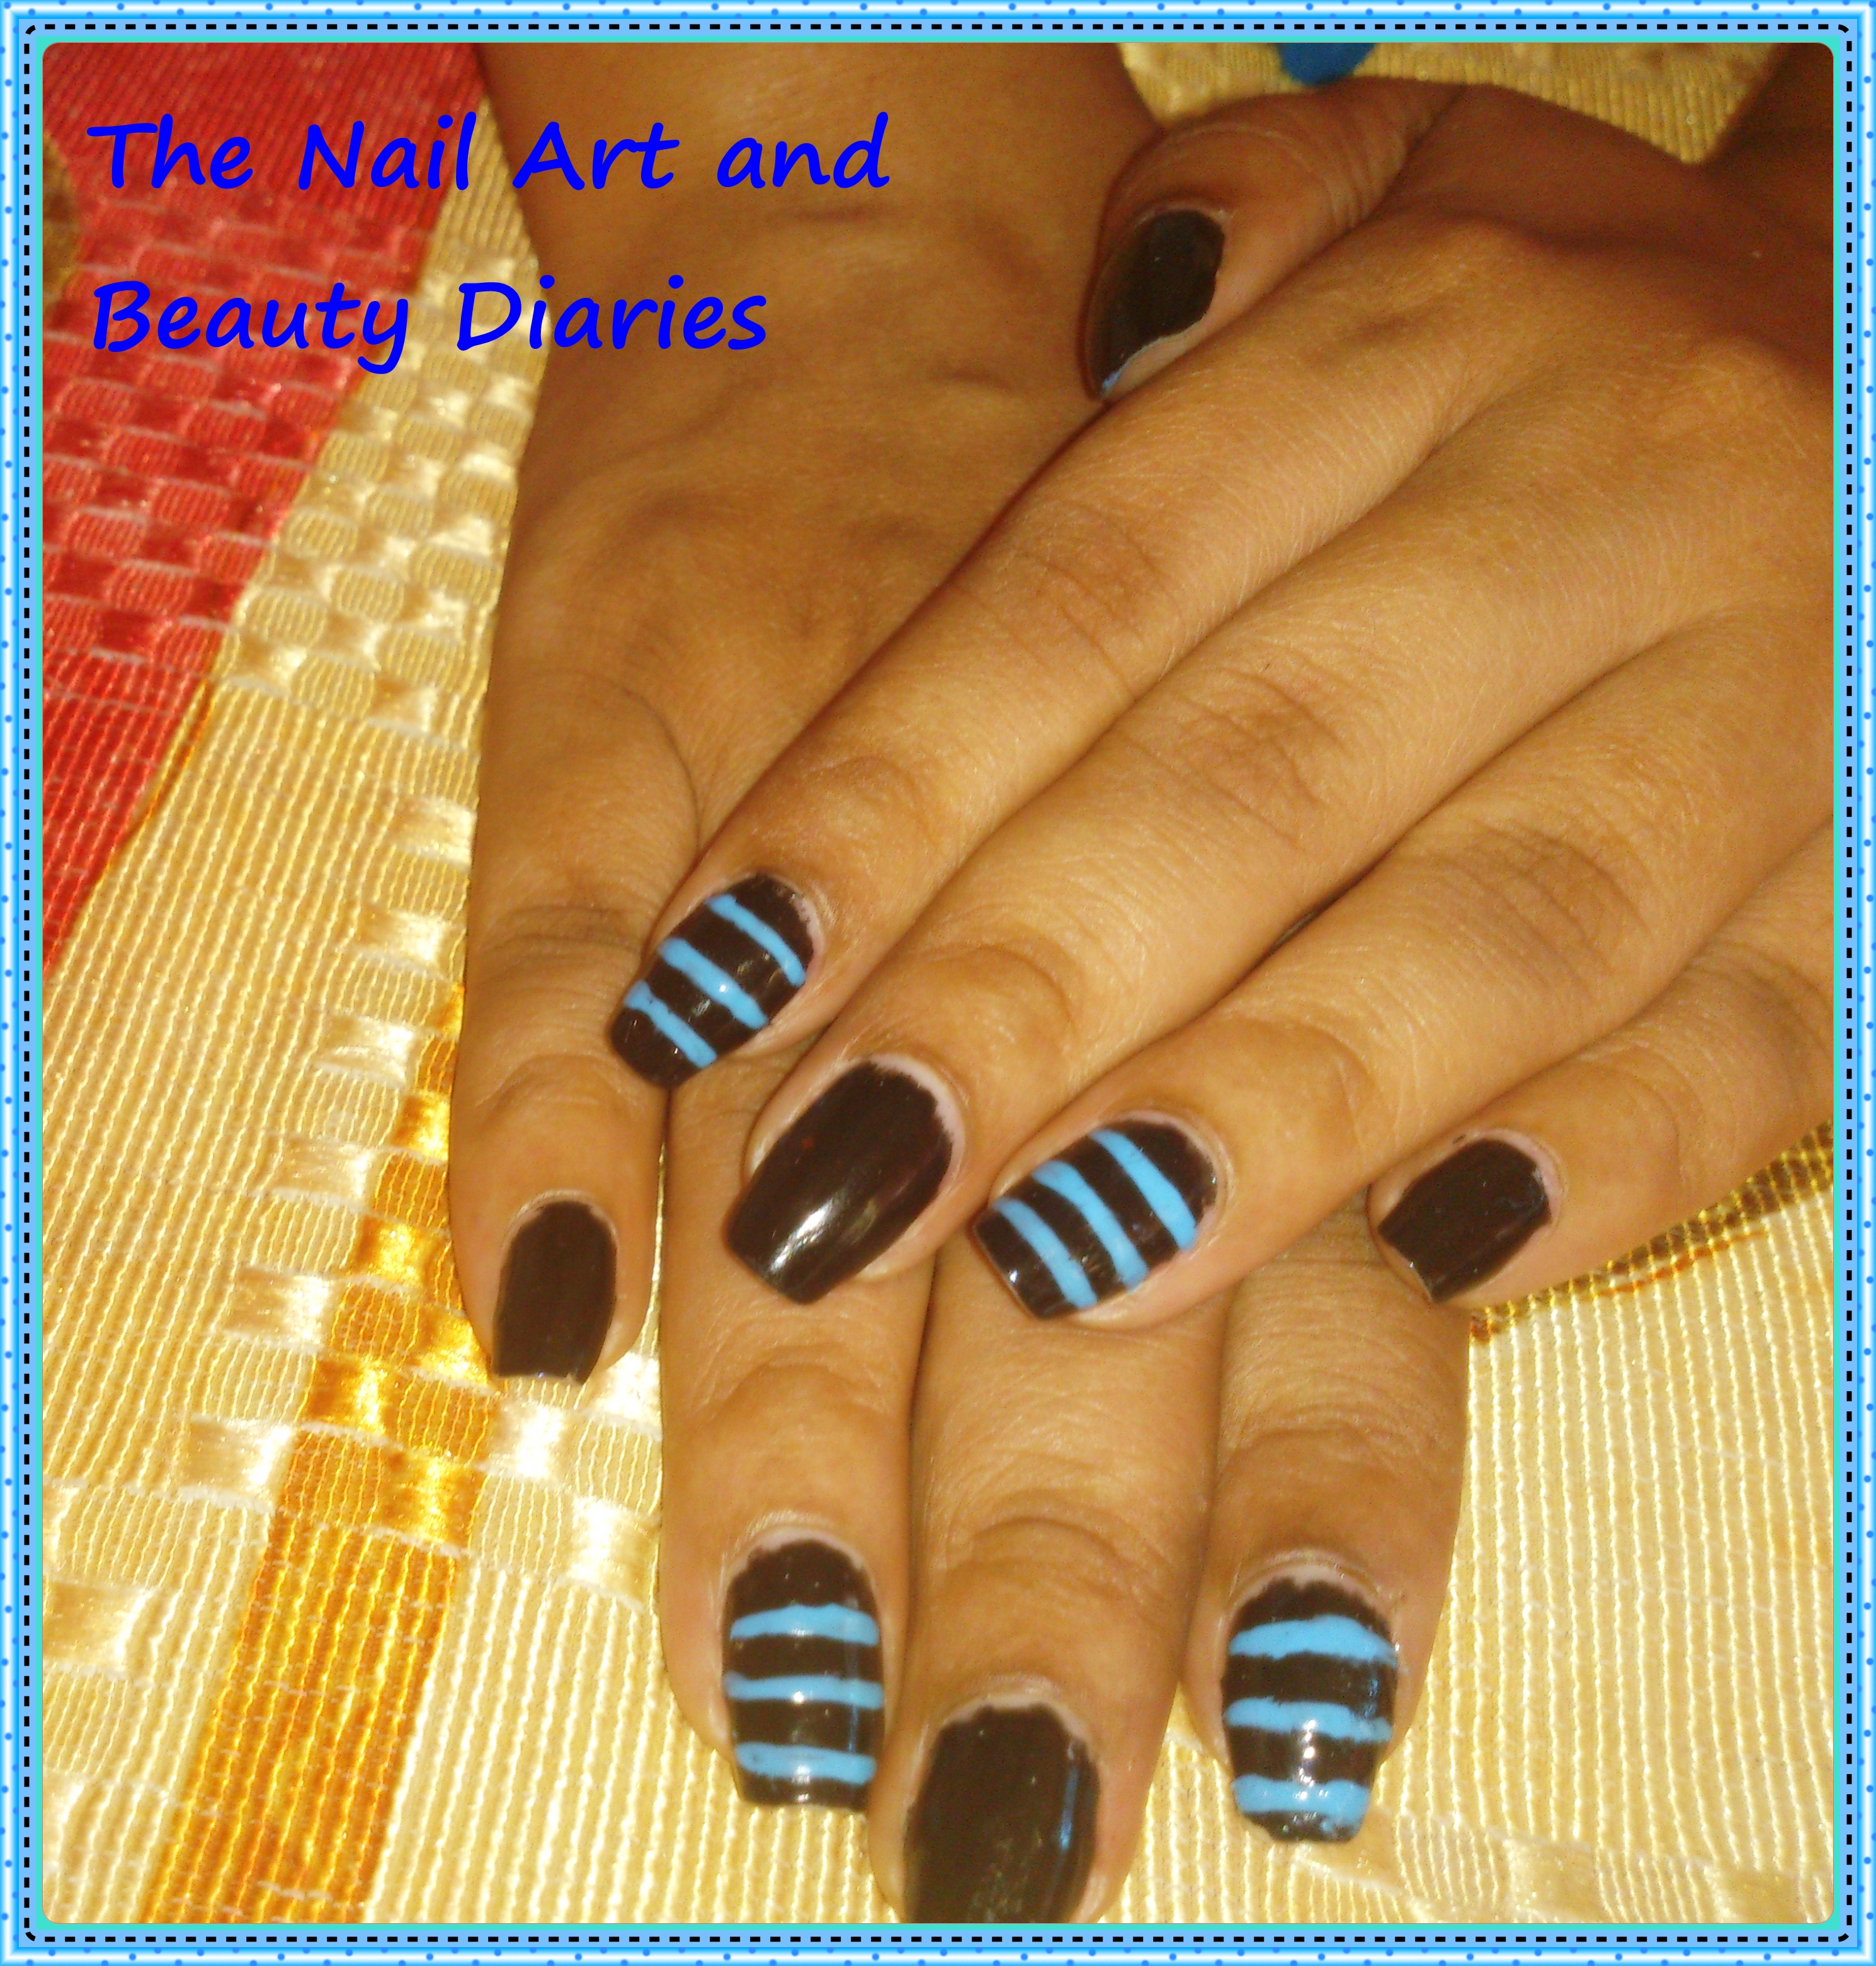 The Men in Black n Blue Nail Art | Nail Art and Beauty